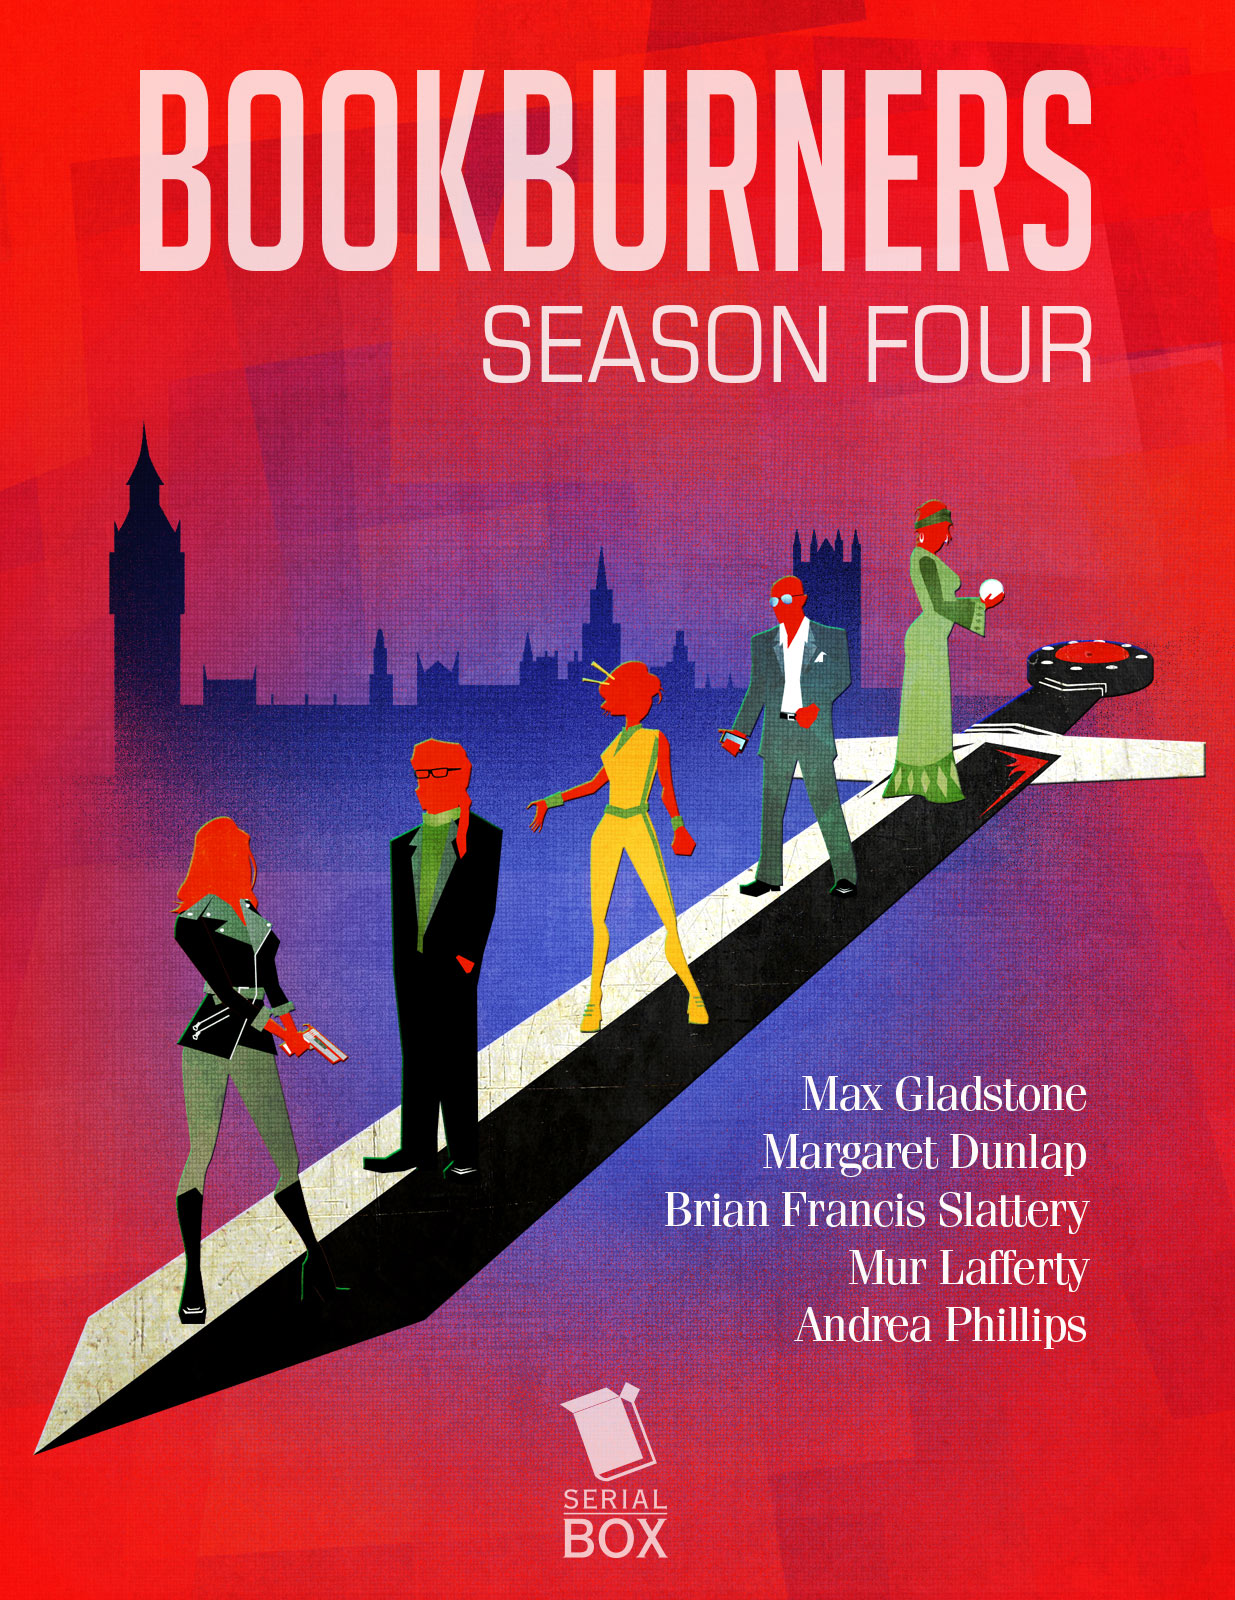 Bookburners Season 4 cover image